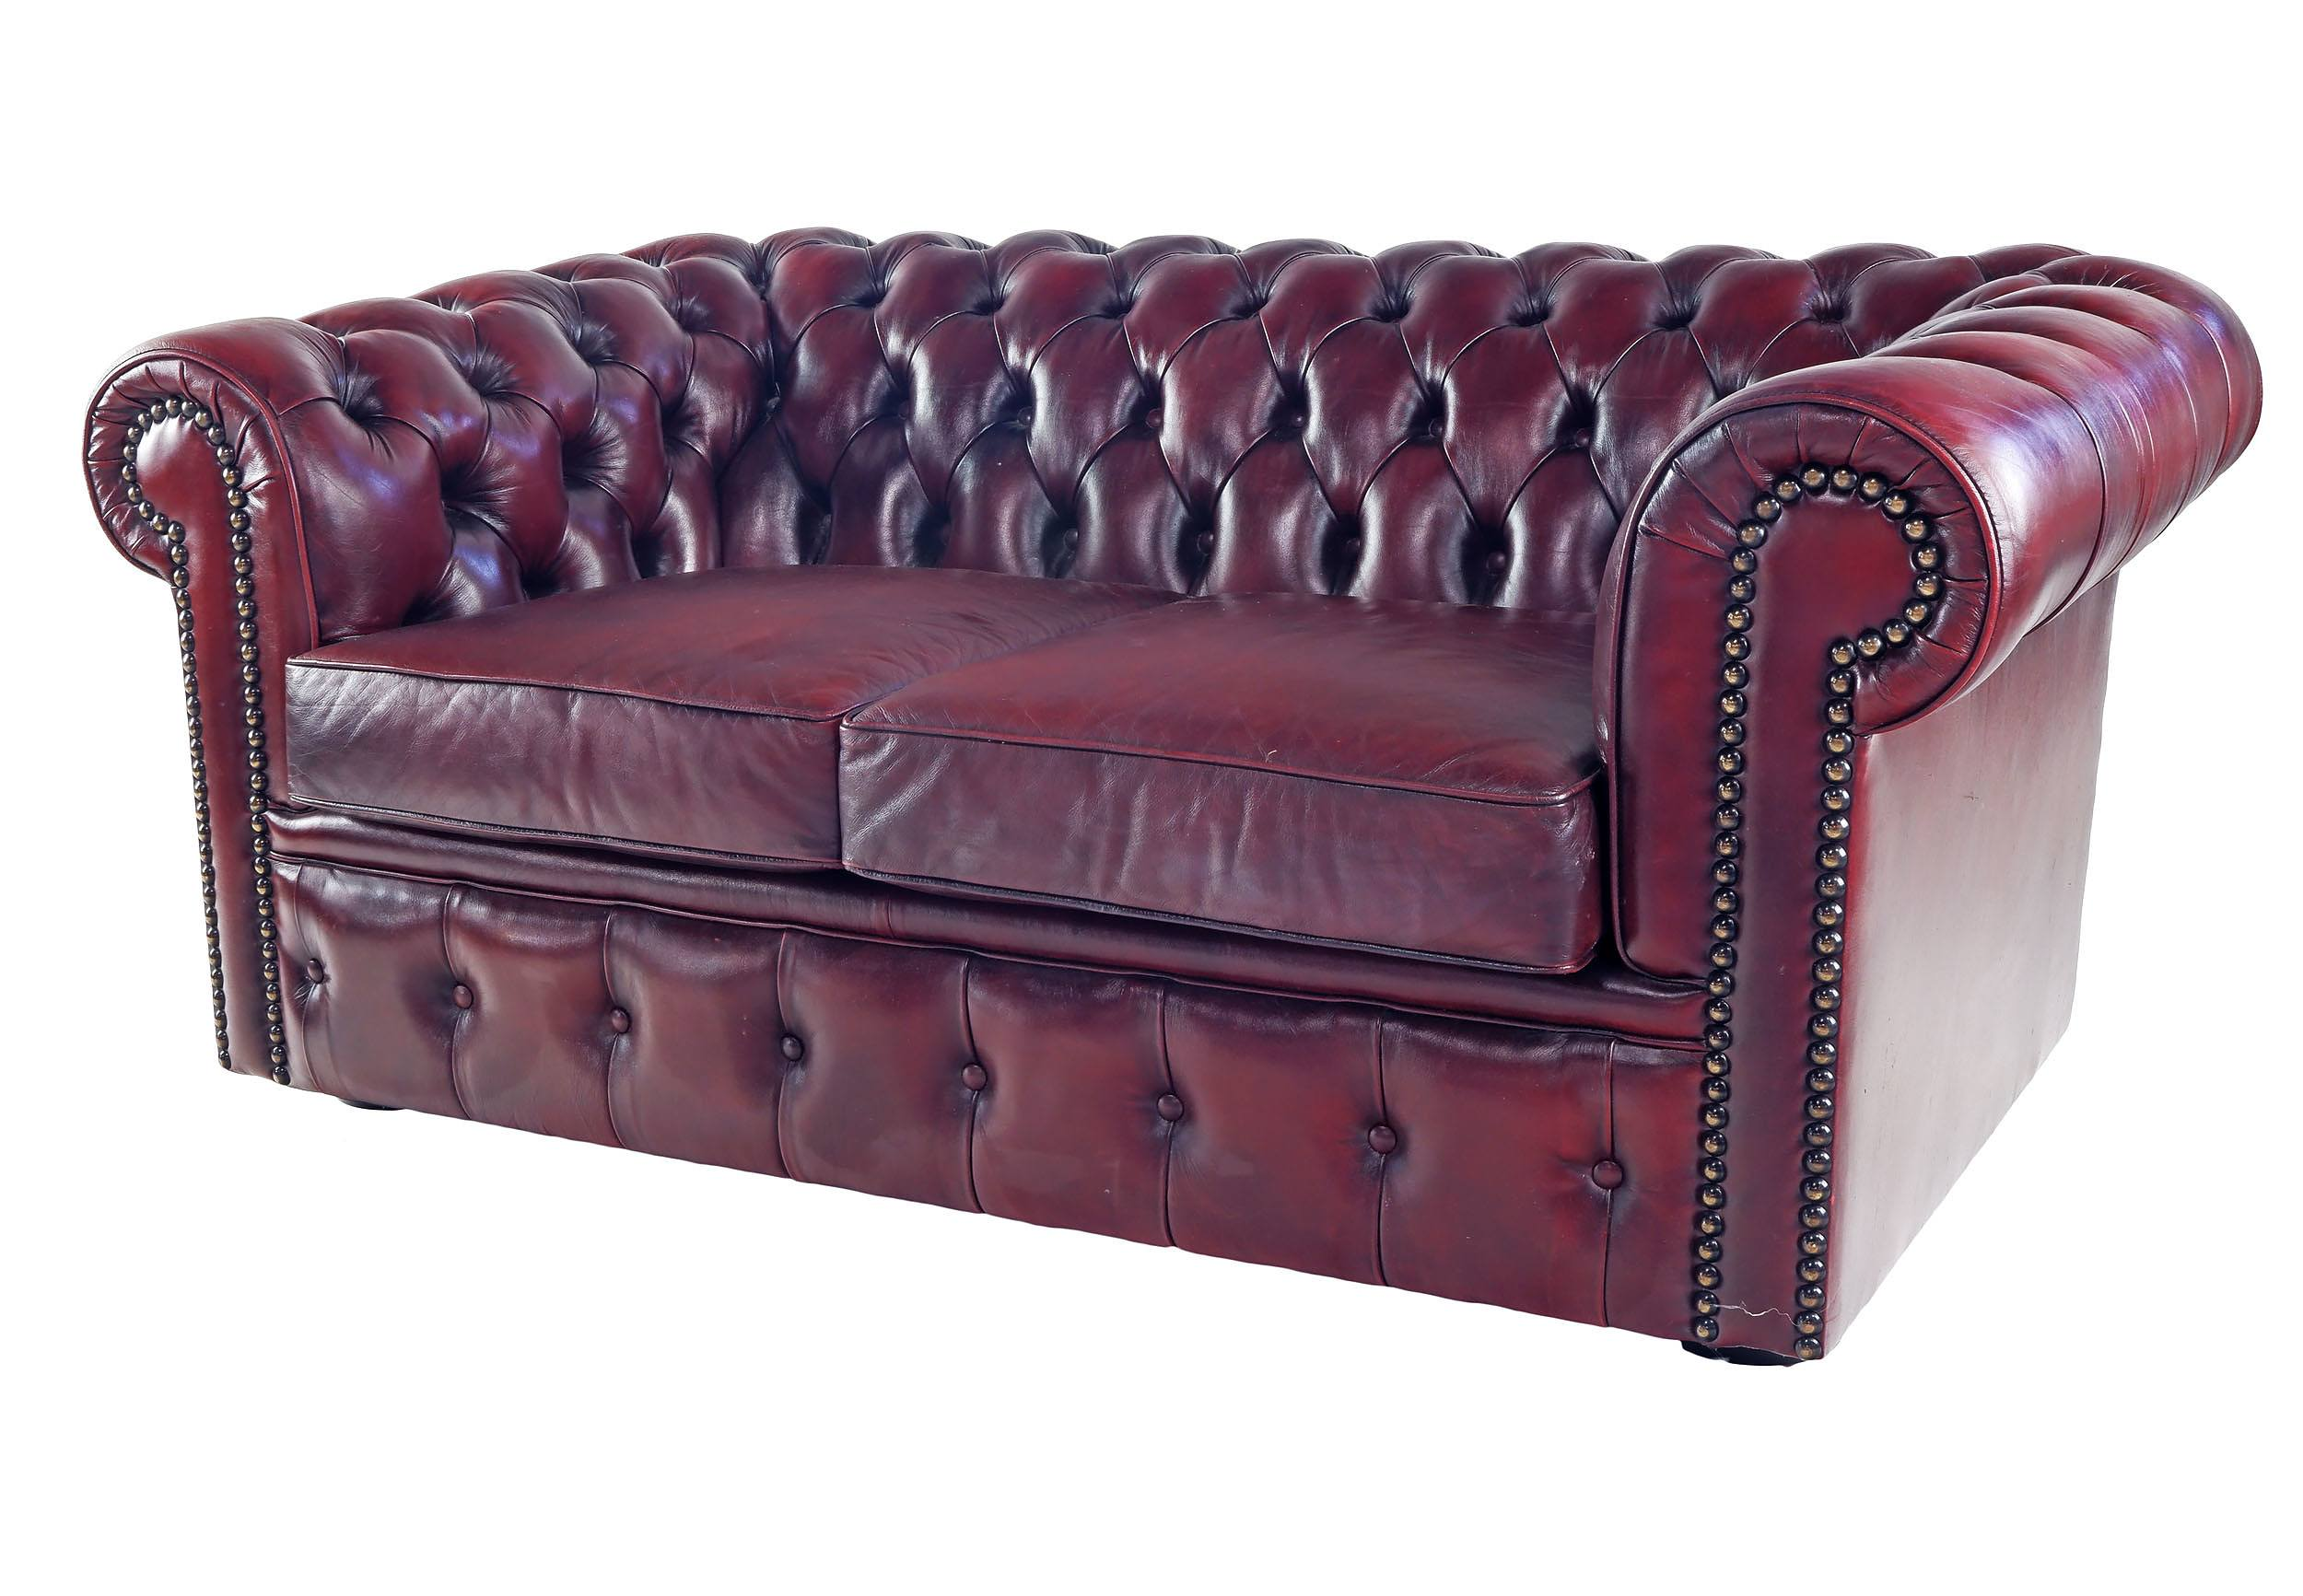 'Moran Chesterfield Deep Buttoned Burgundy Leather Two Seater Chesterfield Sofa with Brass Studs'